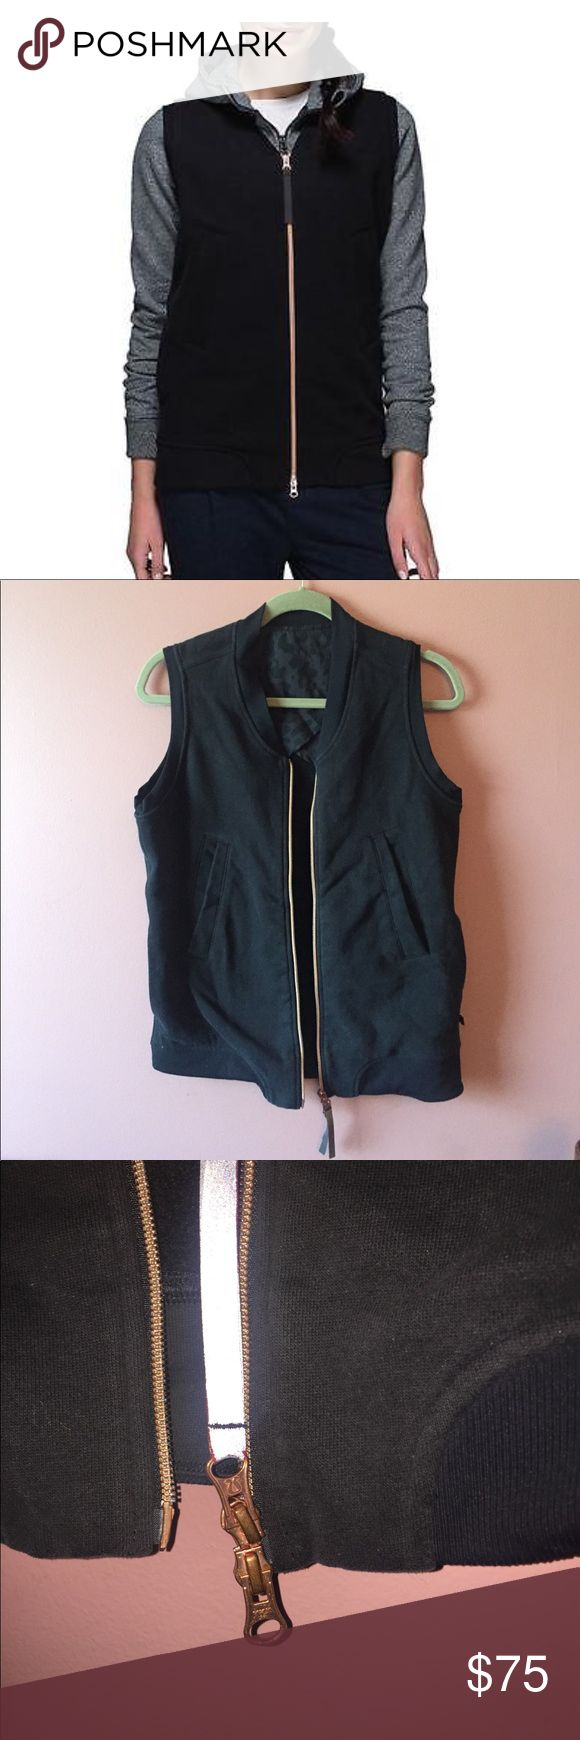 Lululemon Vest Worn Twice! Size 6! Gold Zipper This vest is perfect for layering!! It has 4 pockets!! Paired with a perfect rose gold zipper to give the vest a pop that it needs!! This is a great find!! Size 6! lululemon athletica Jackets & Coats Vests